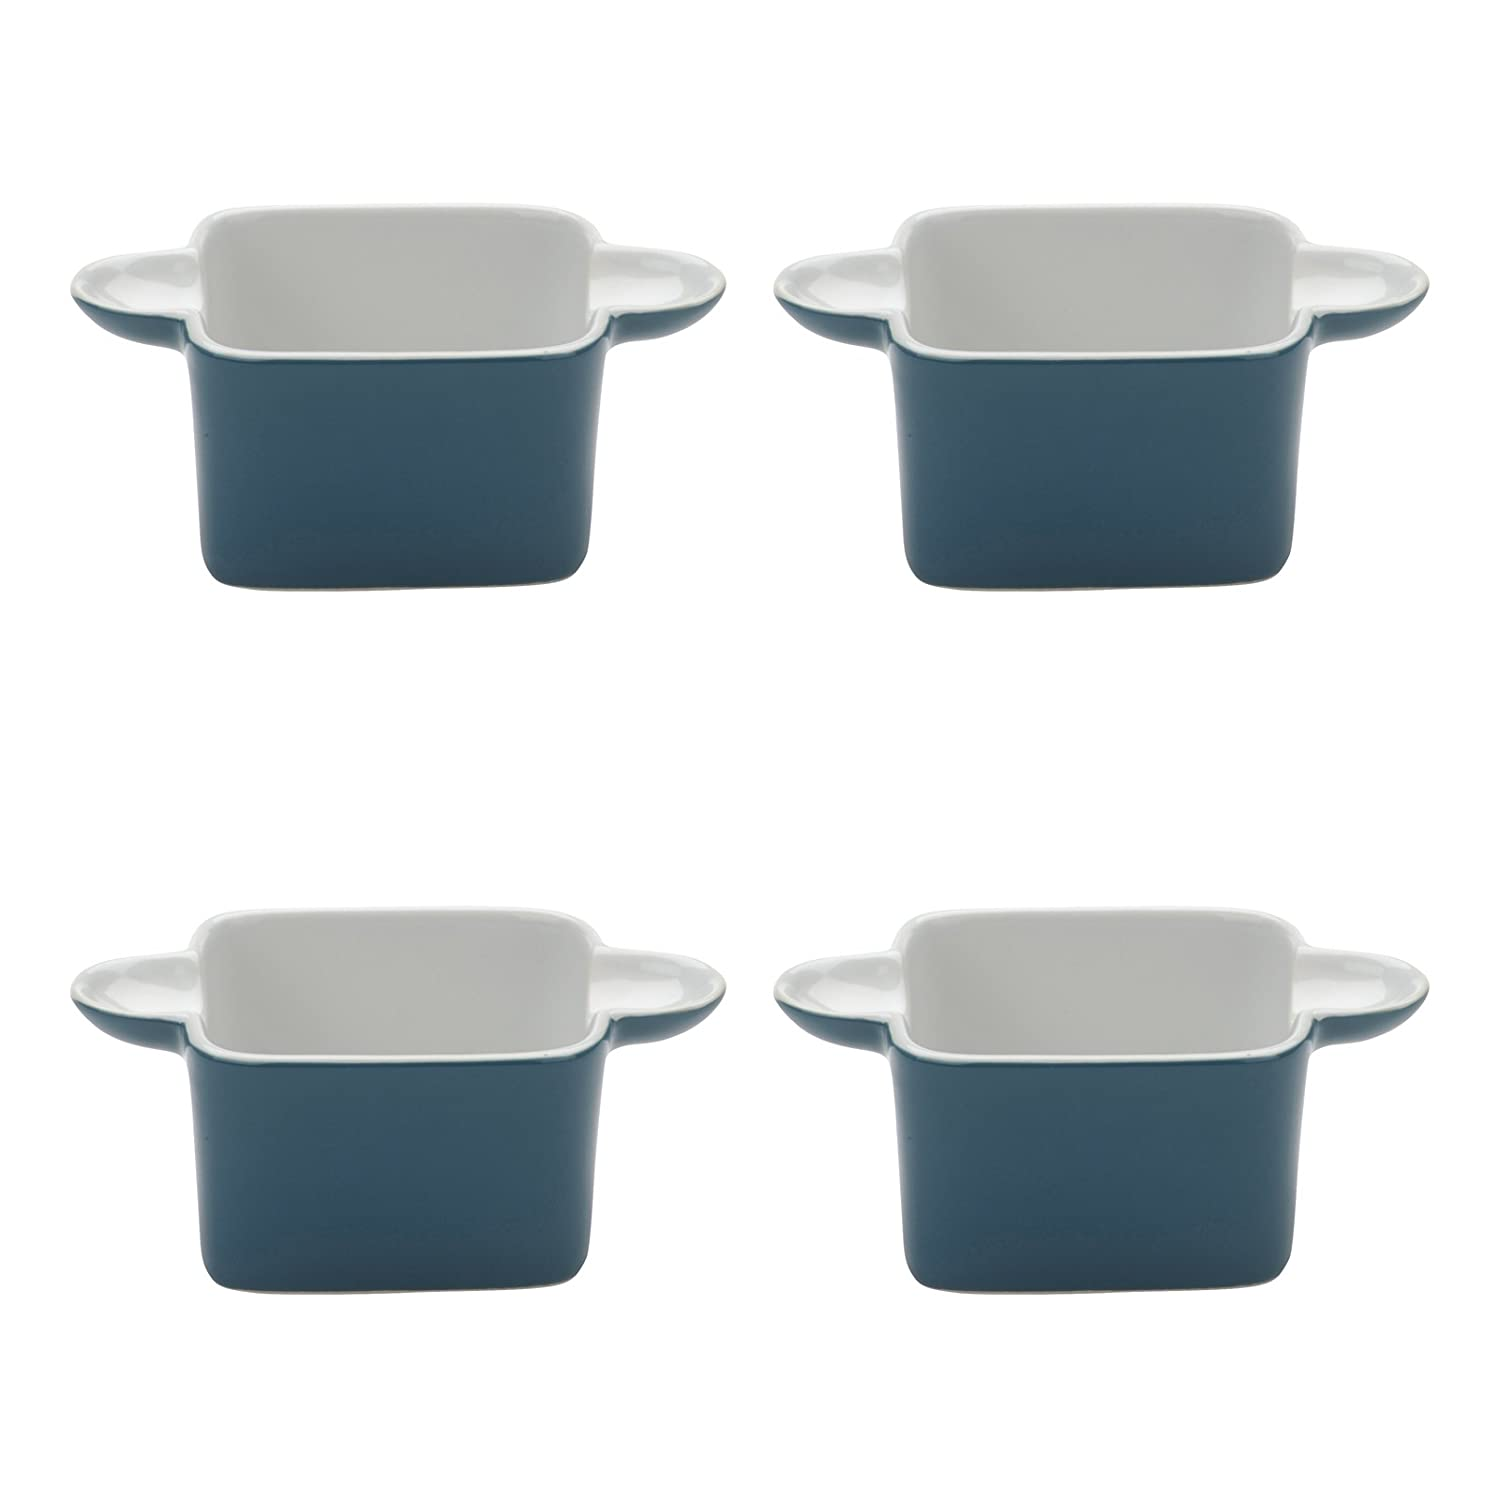 Bia Scoop Ramekin in Teal 401470+995PK4